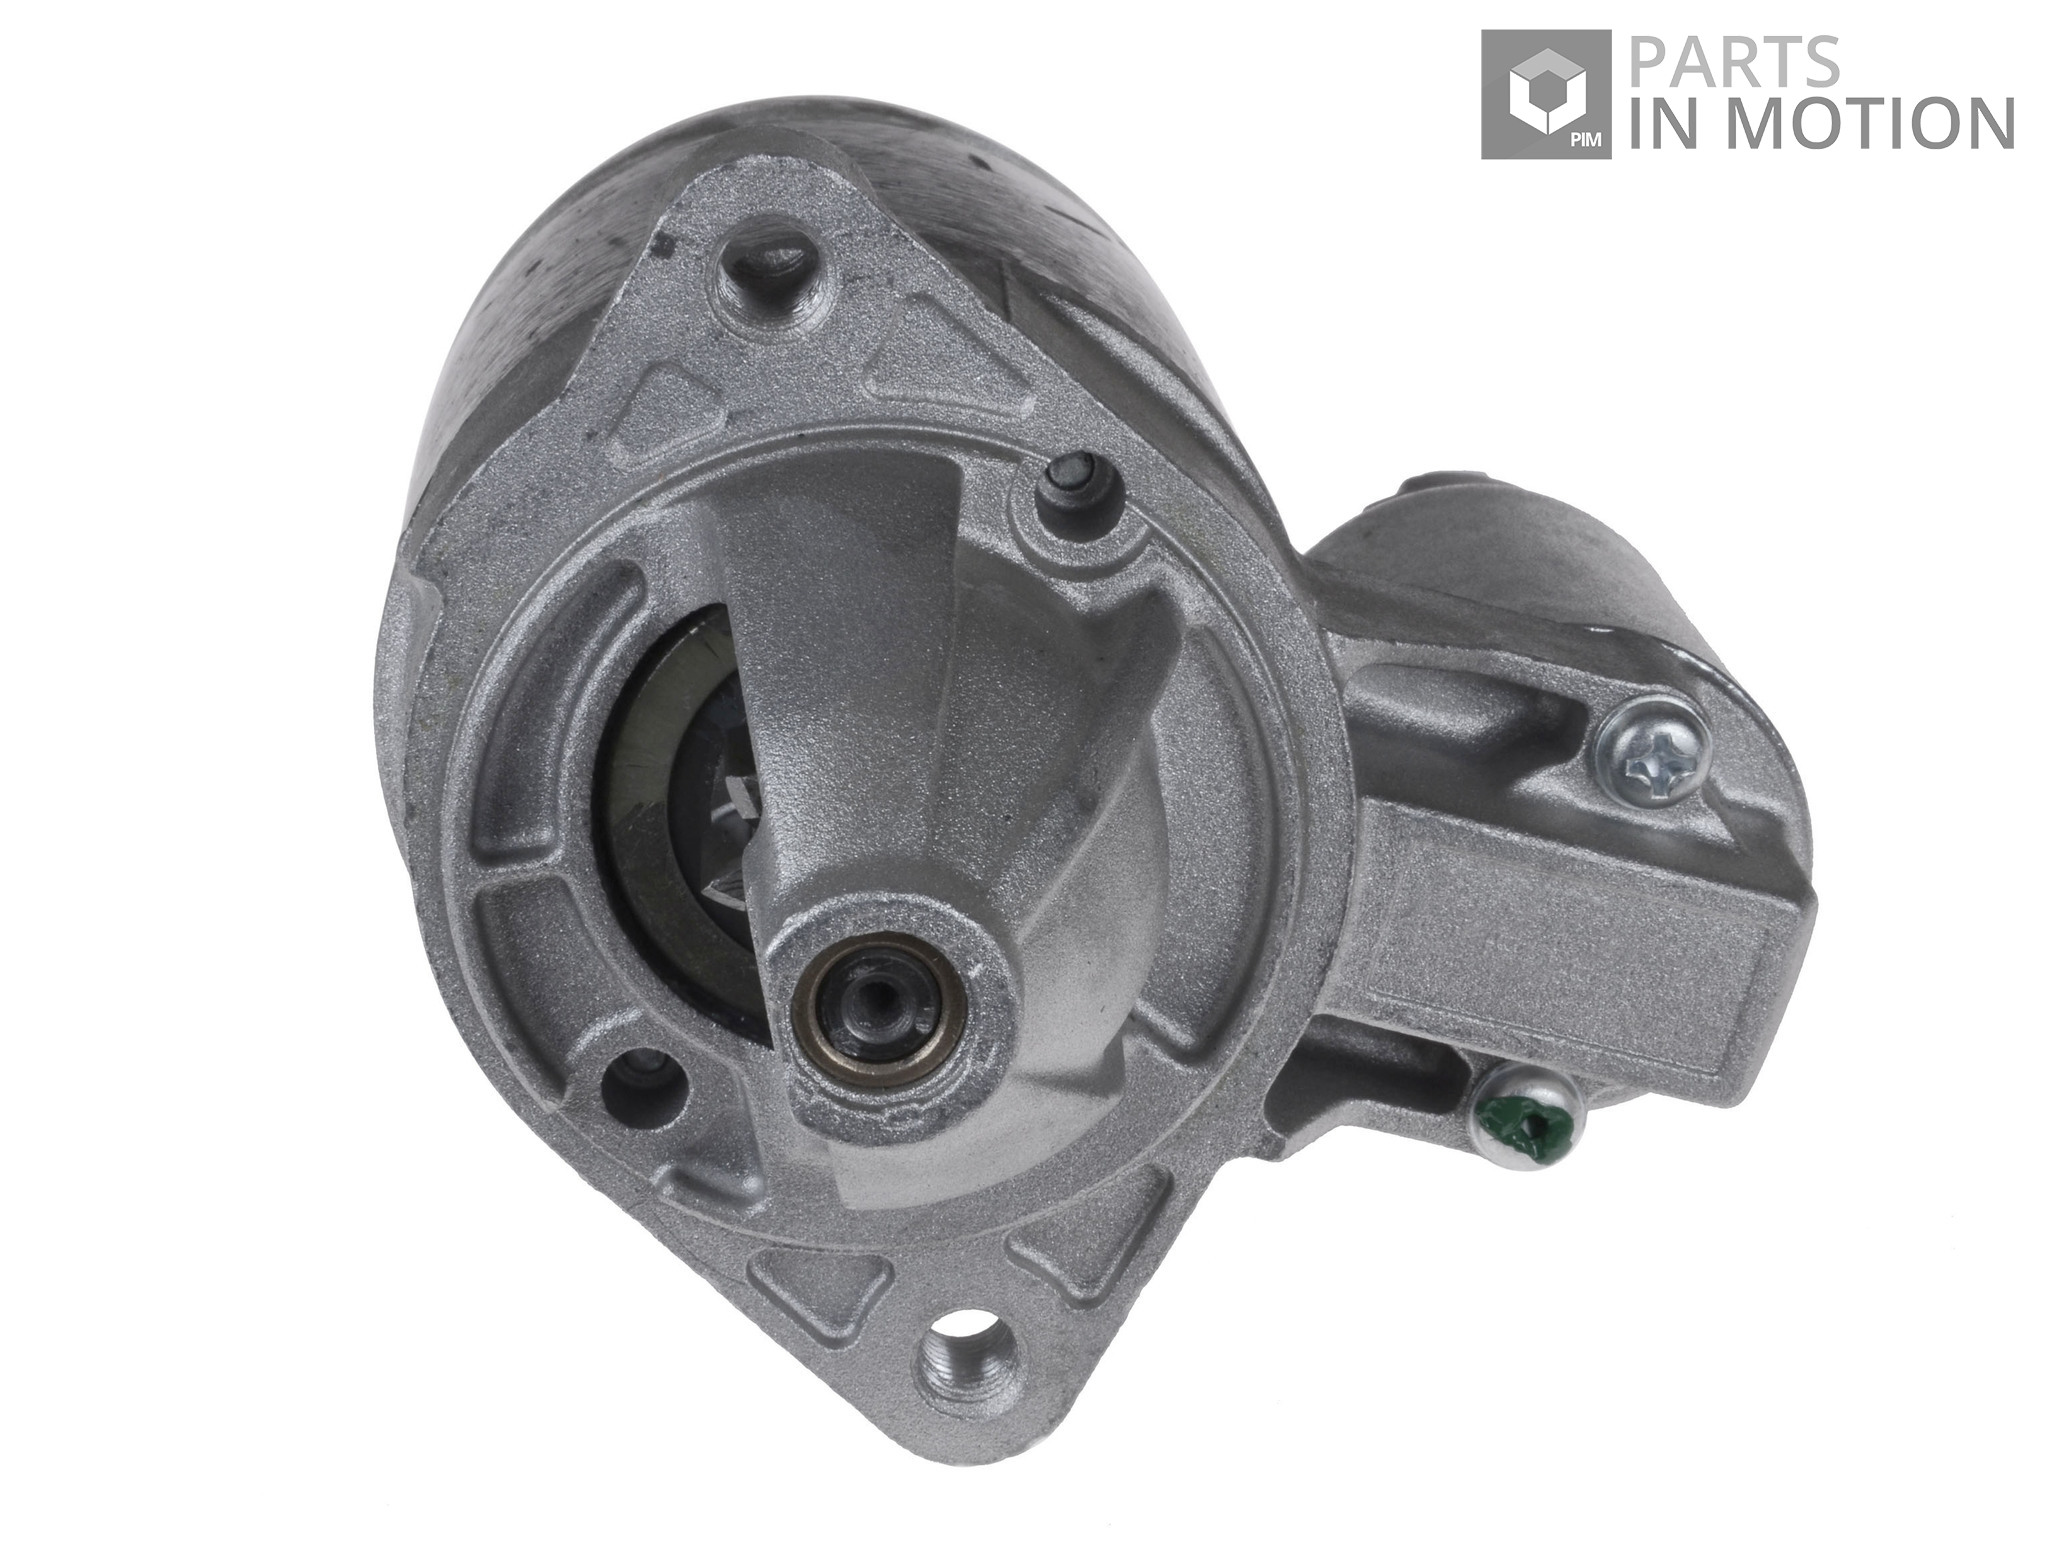 Starter motor adc41216 blue print md192227 md192227r pw536091 image is loading starter motor adc41216 blue print md192227 md192227r pw536091 malvernweather Gallery